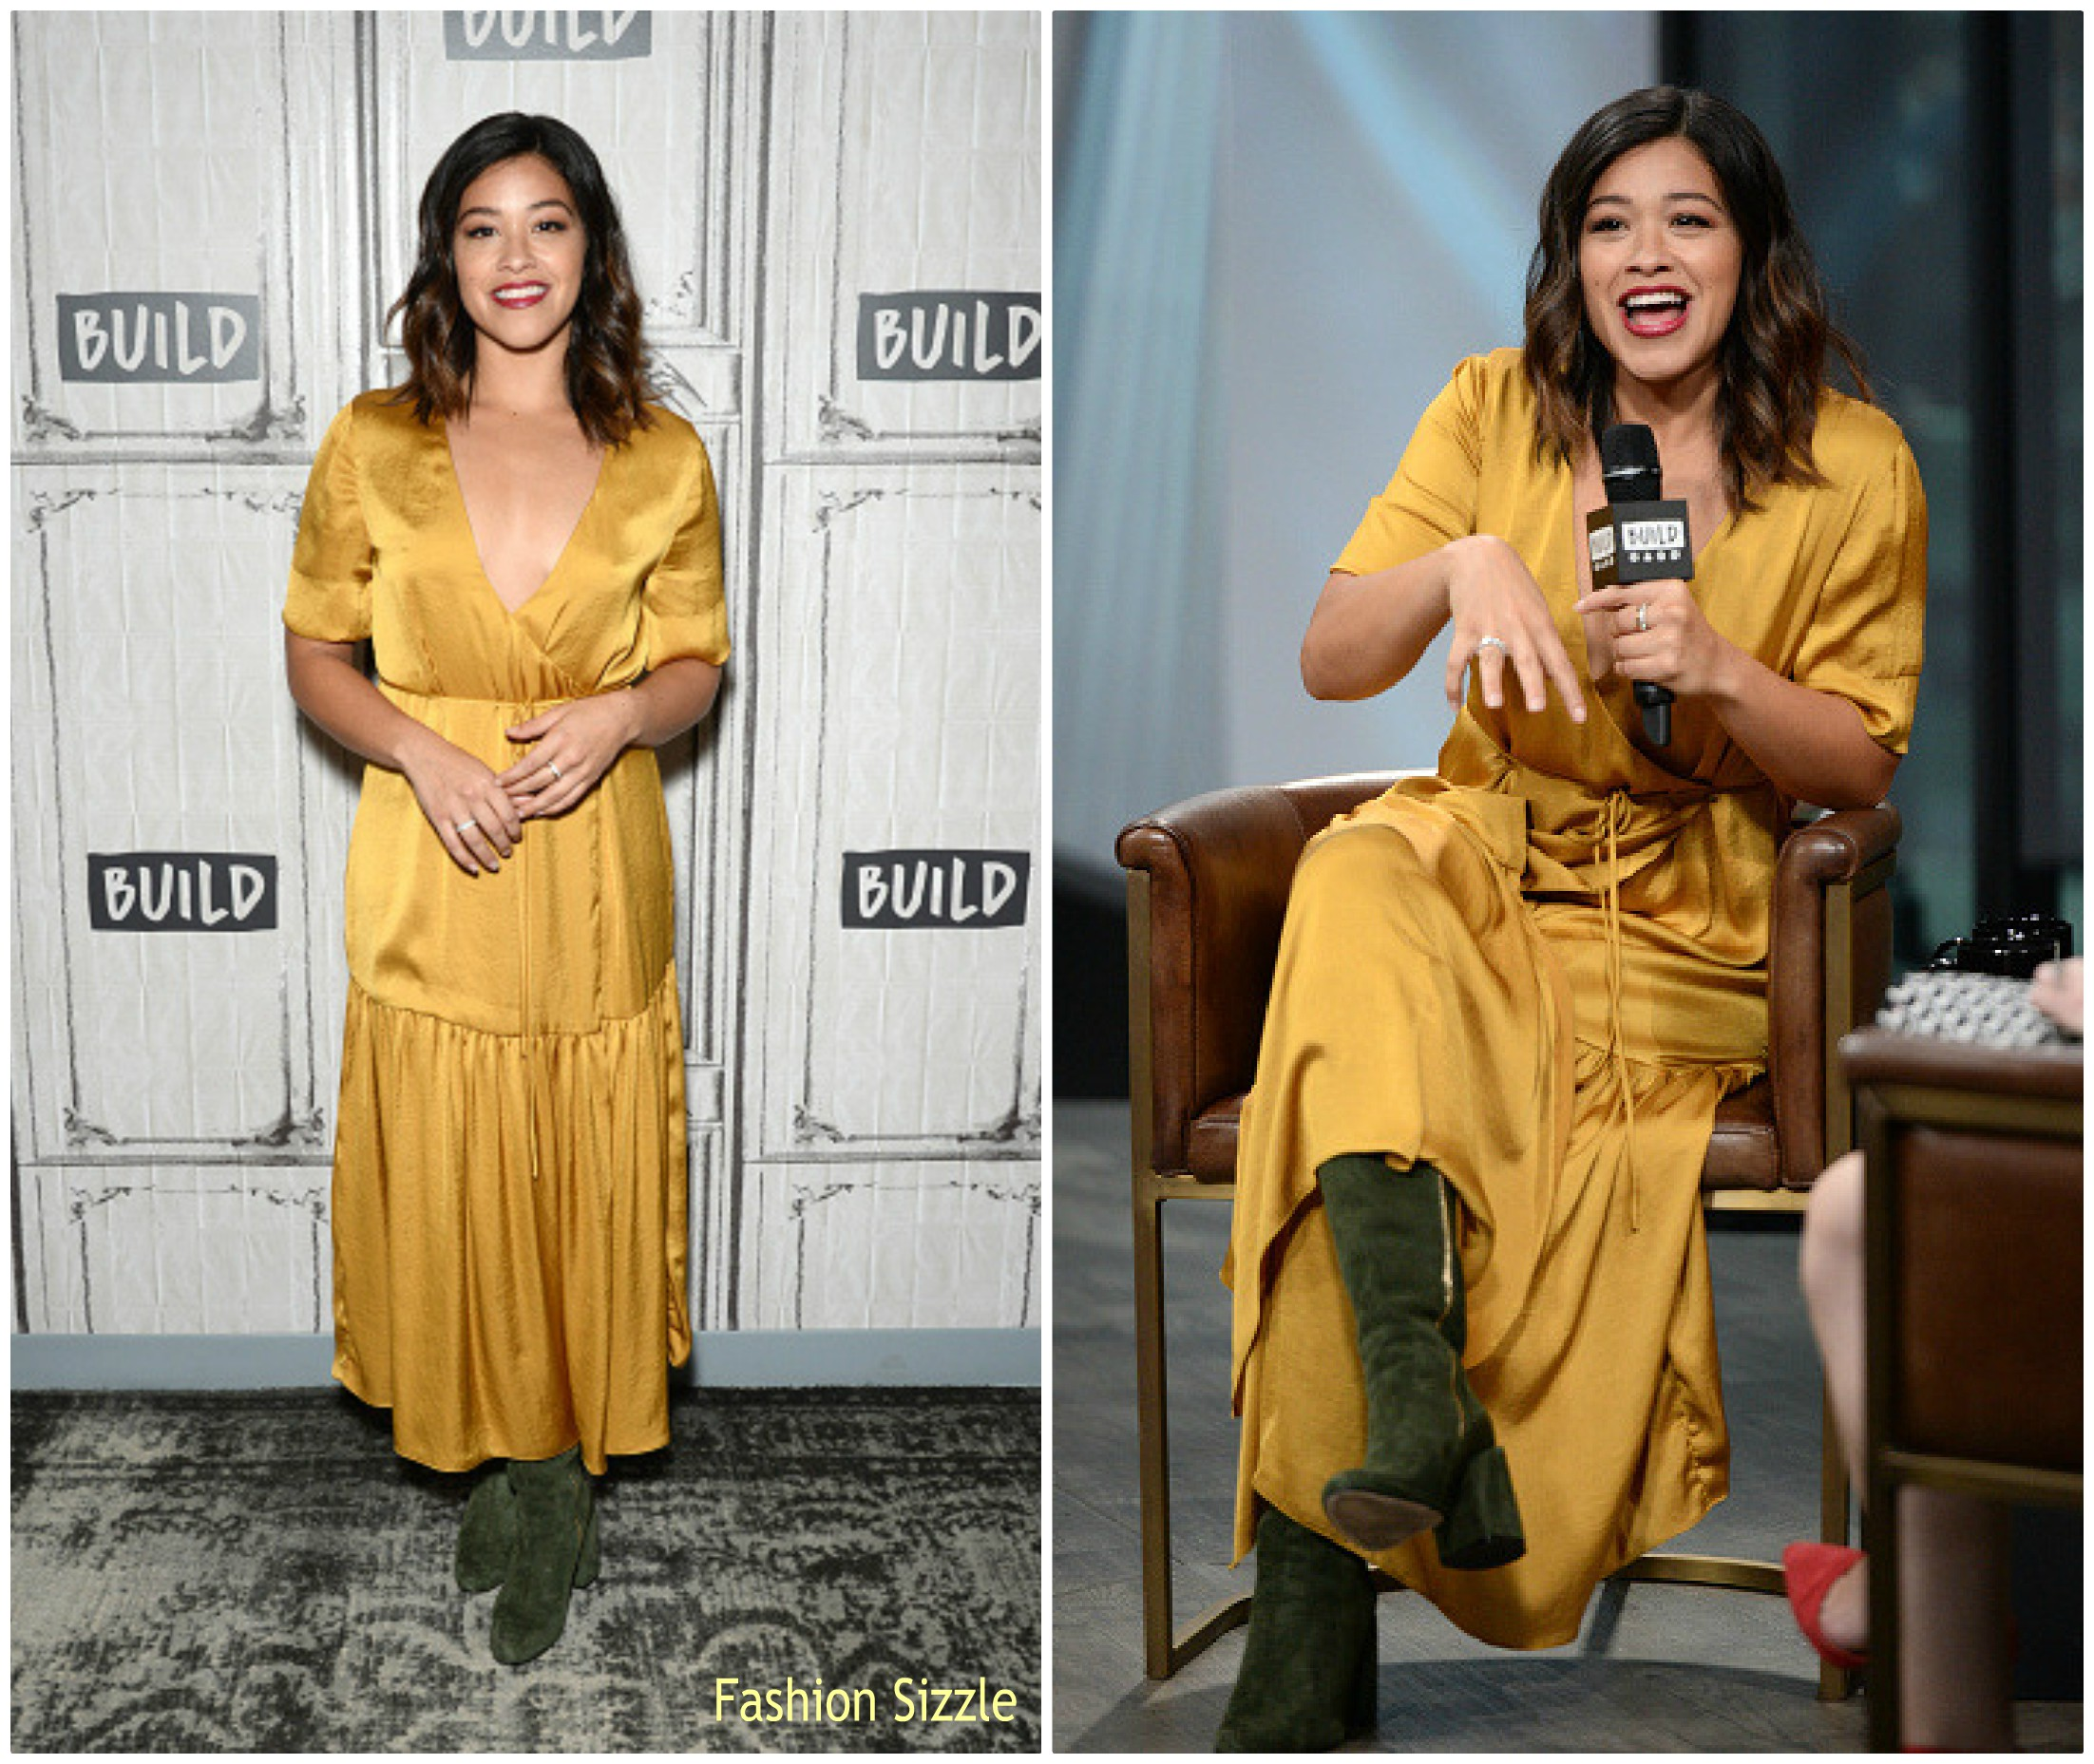 gina-rodriguez-in-cheistine-alcalay-build-presents-the-star